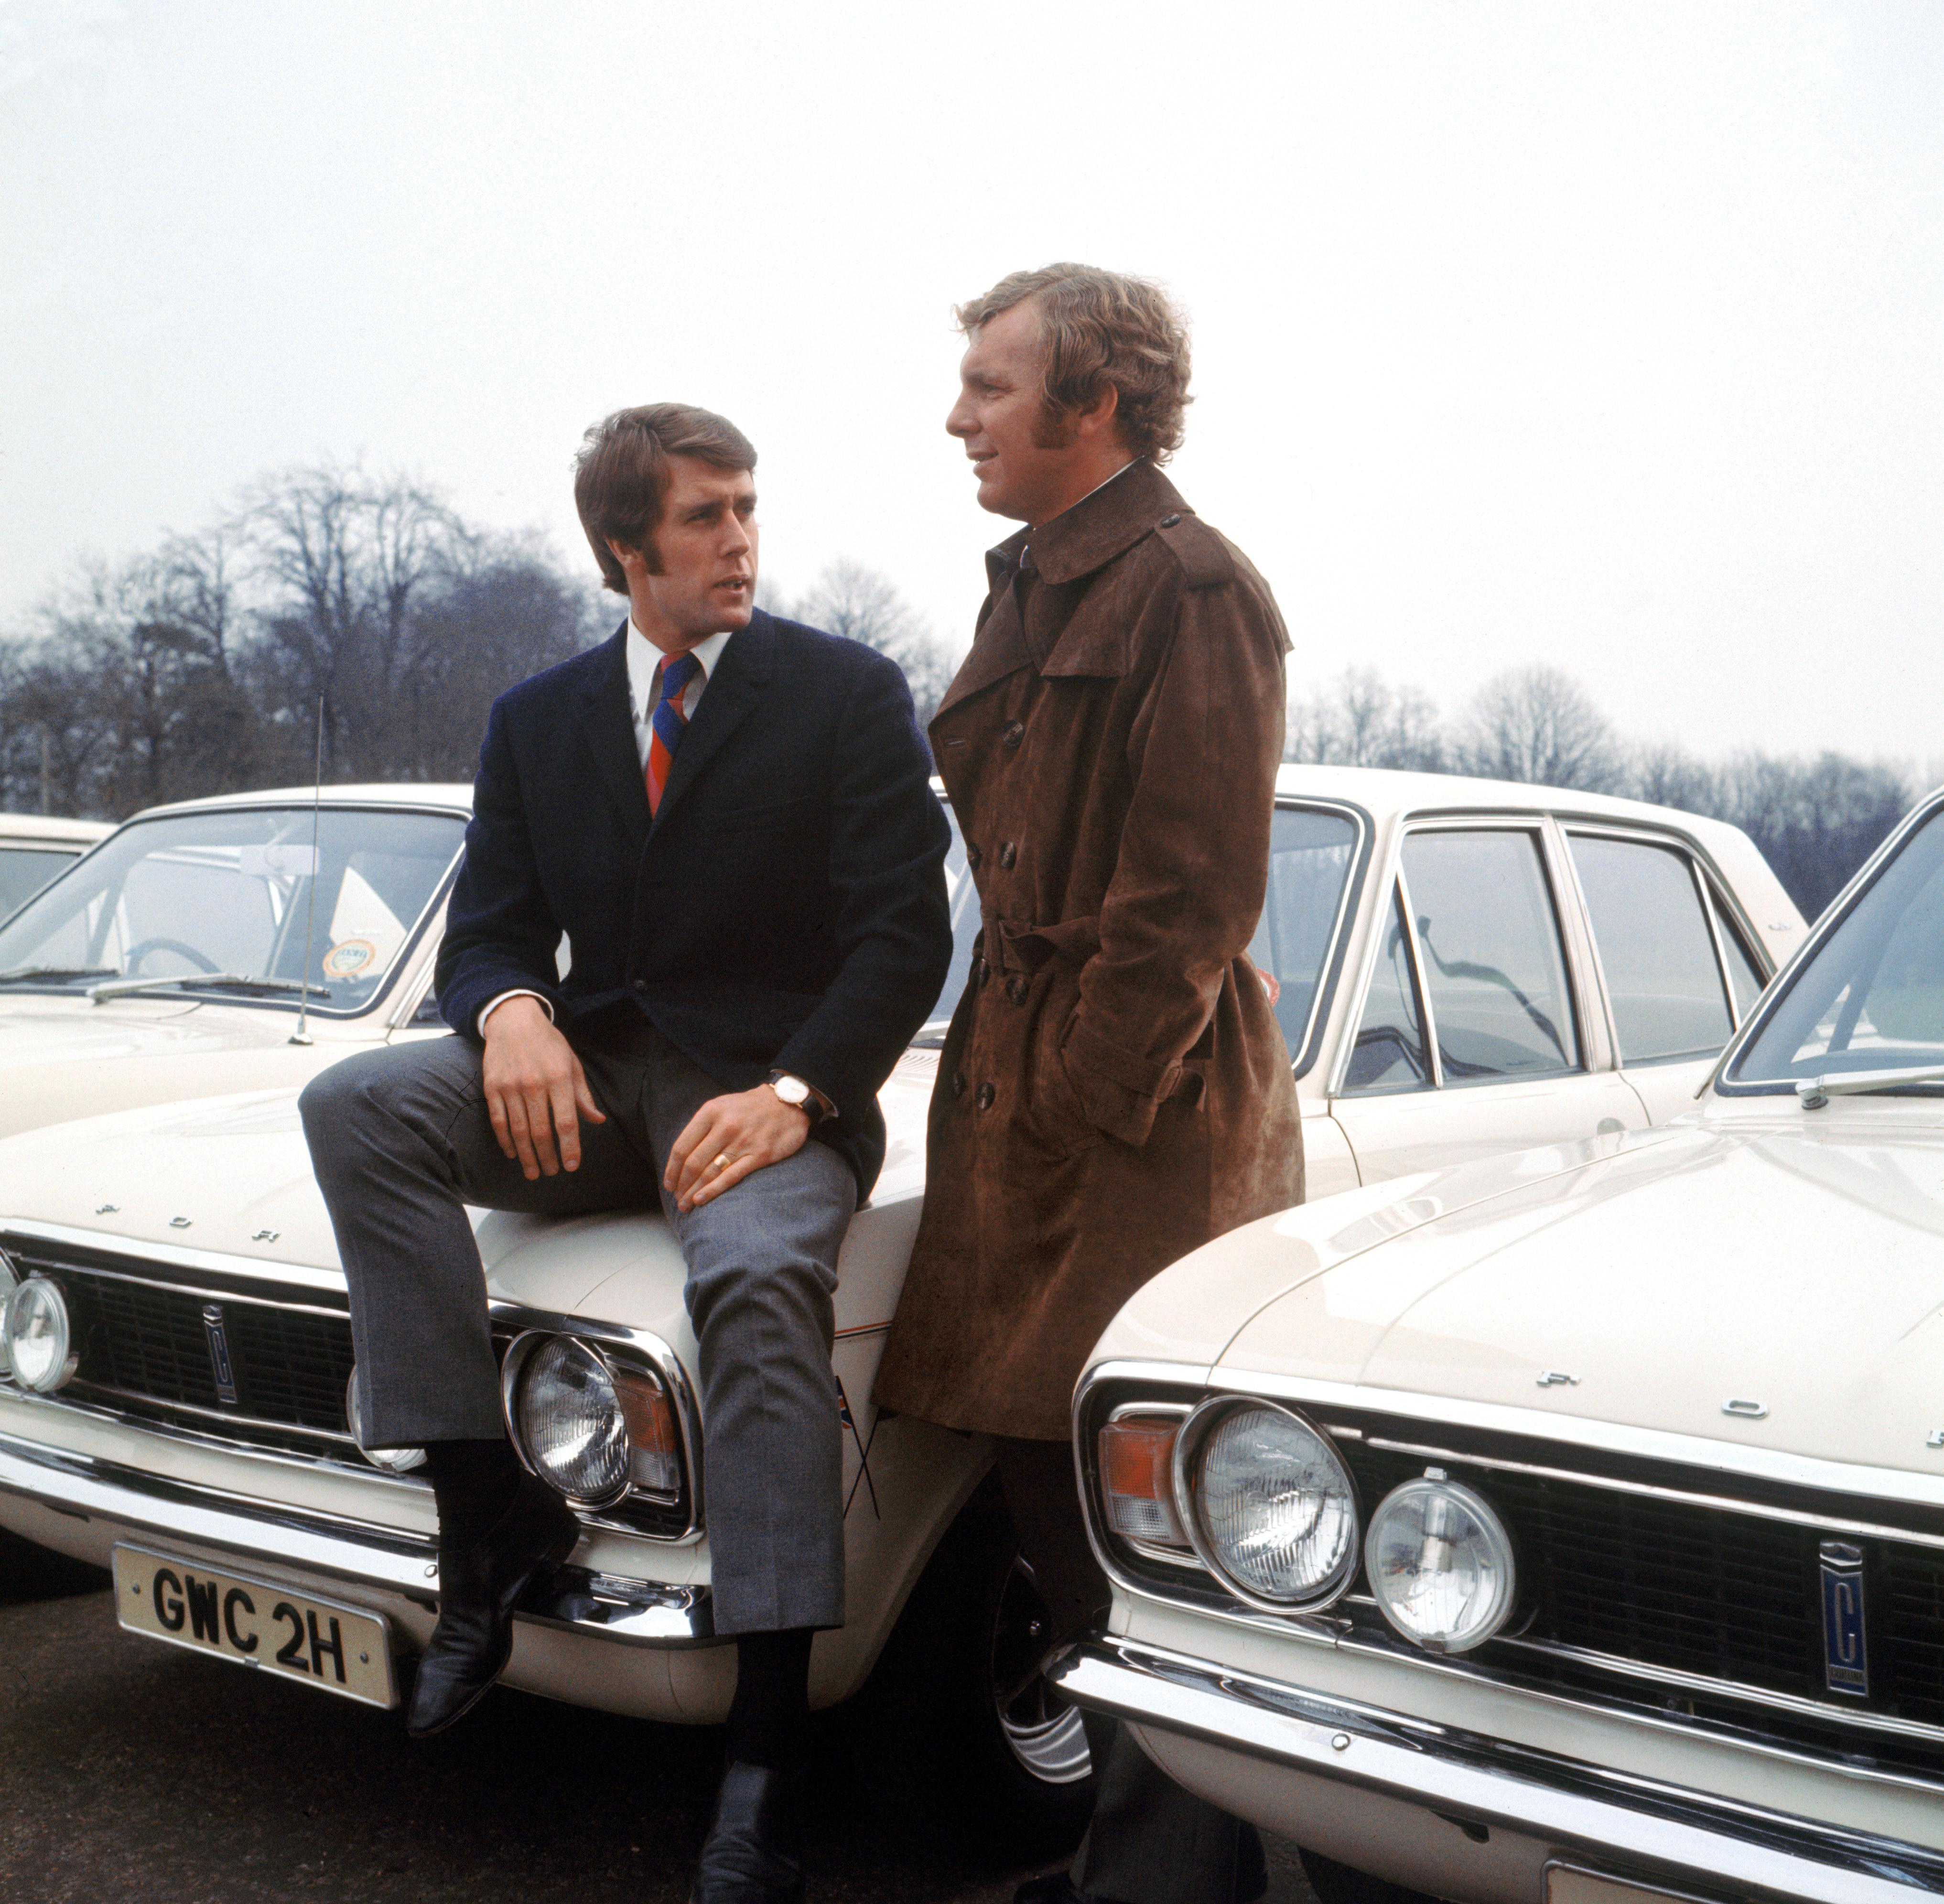 Two more England players (Geoff Hurst and Bobby Moore) ecstatic at the thought of a Ford Cortina for a year, 1970.